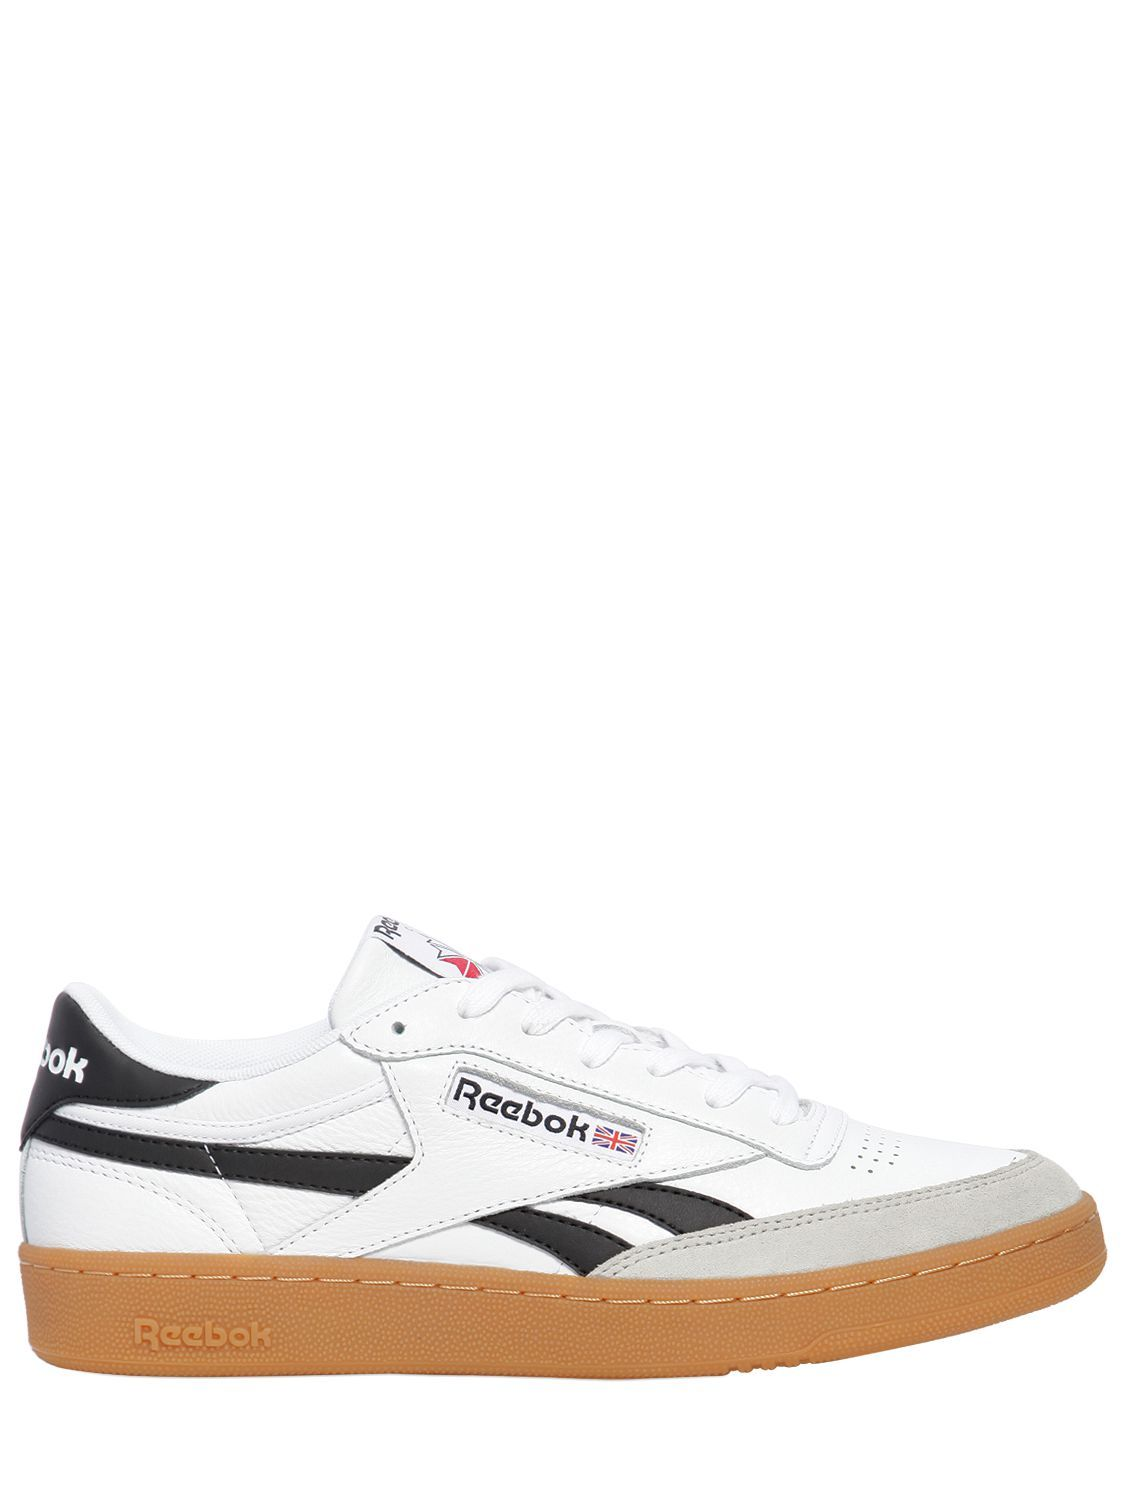 REEBOK REVENGE PLUS GUM LEATHER SNEAKERS.  reebok  shoes    7baf98c63